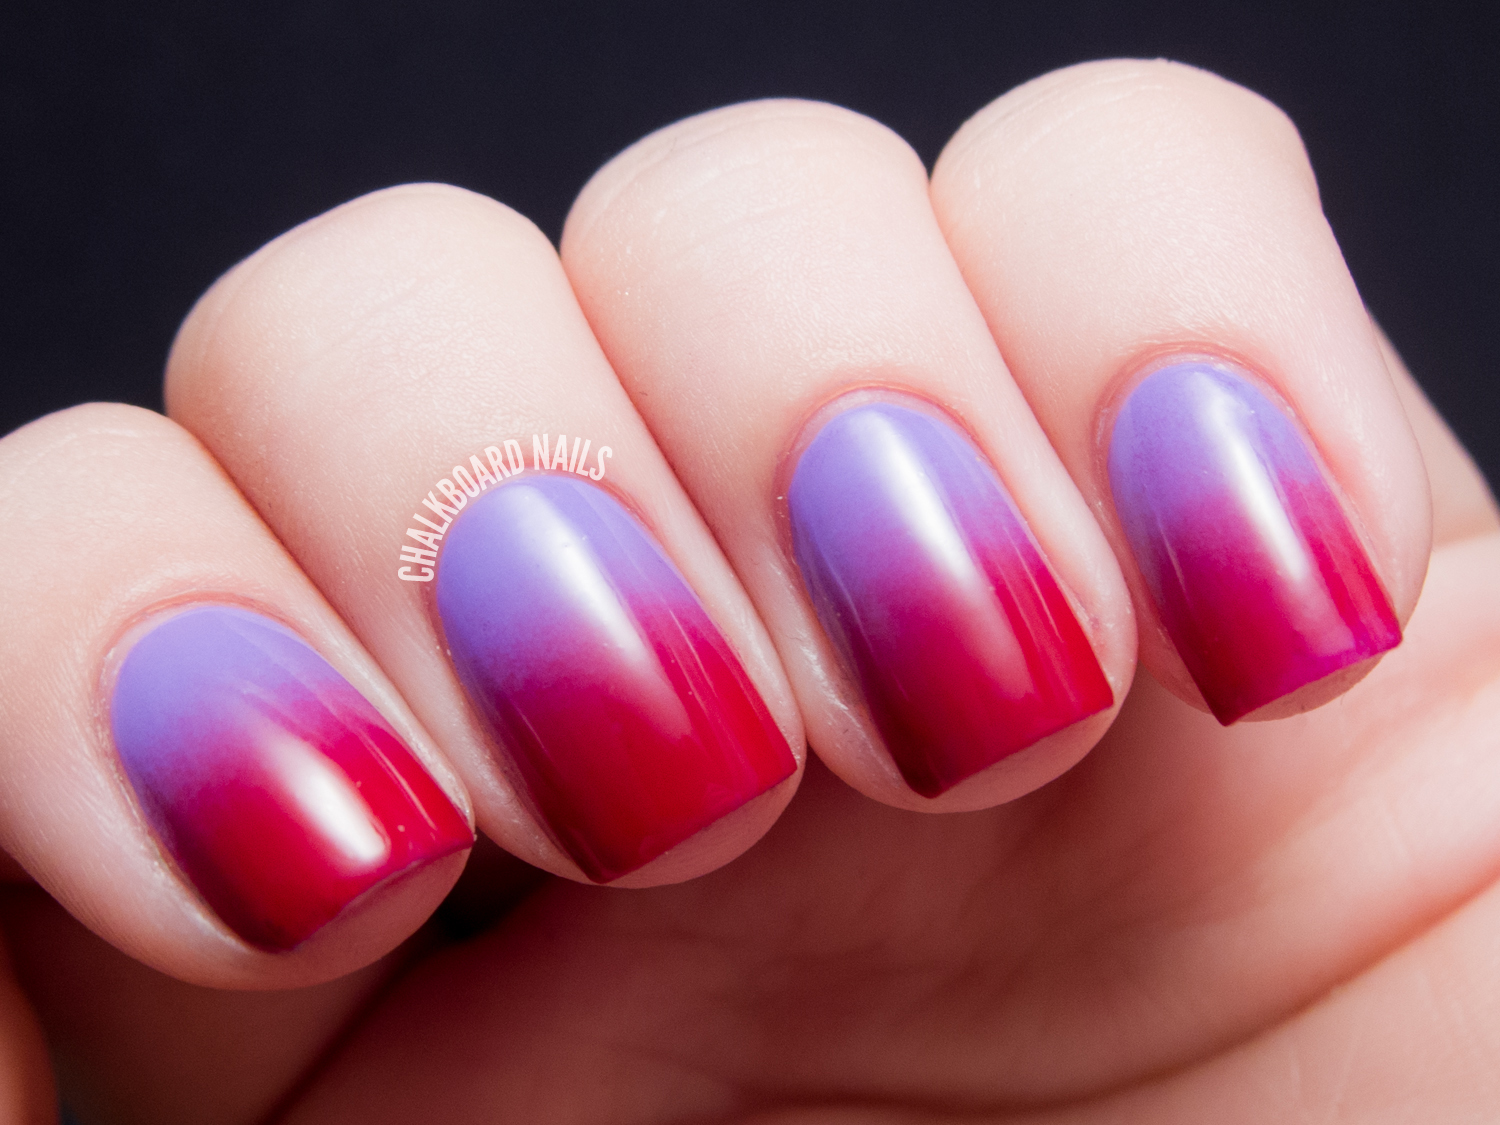 50 Fabulous Ombre Nails And Designs For The Perfect Manicure ...